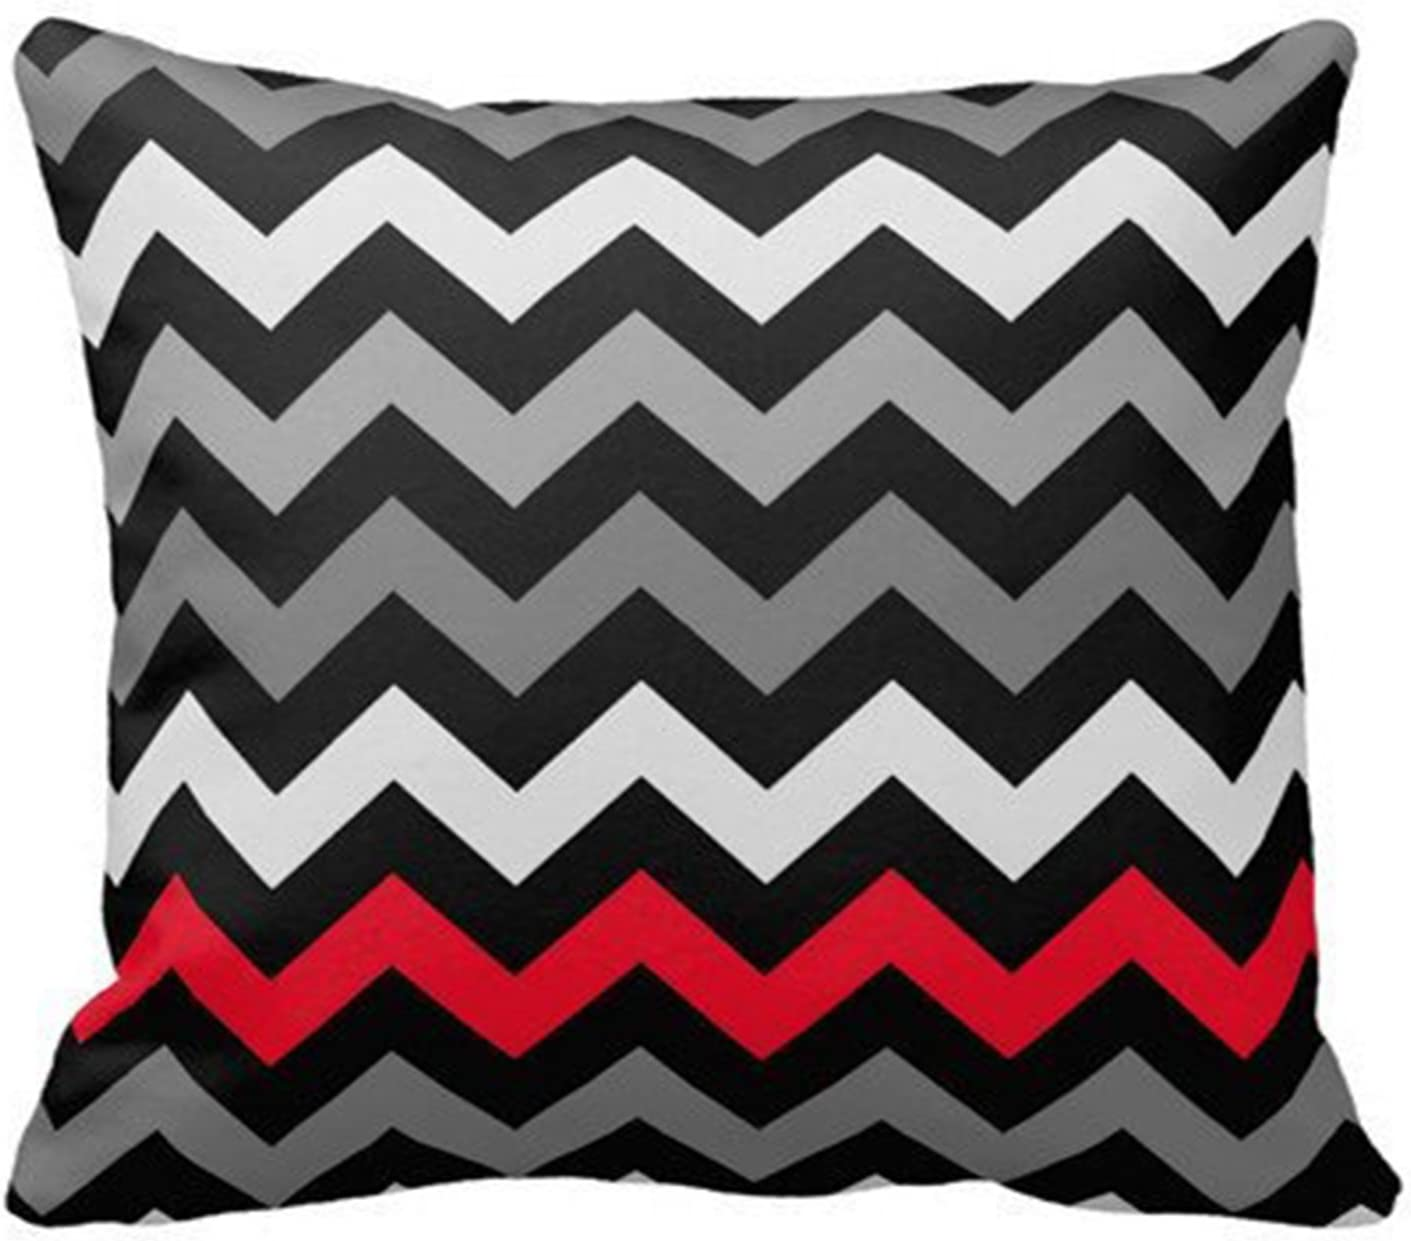 SIXSTARS Black & White Chevron with Red Stripe Throw Pillow Personalized 18x18 Inch Square Cotton Throw Pillow Case Decor Cushion Covers